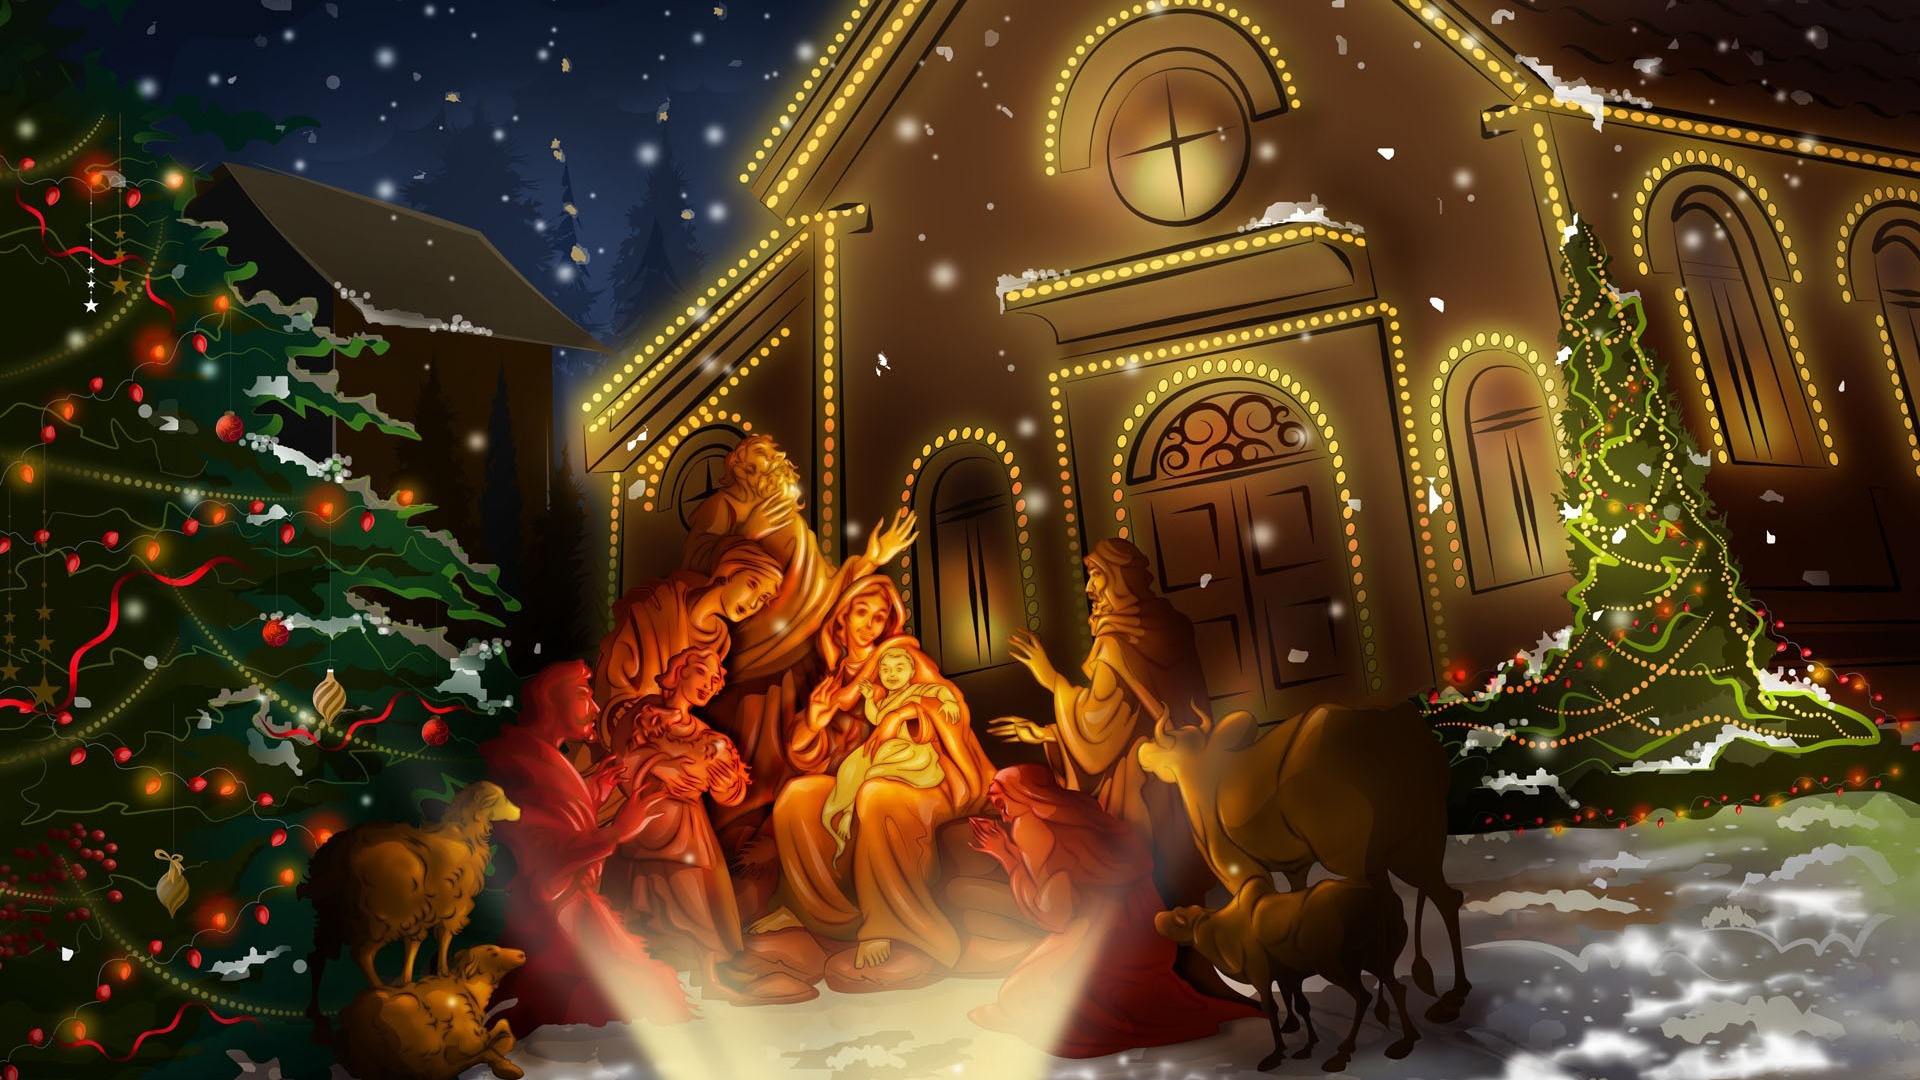 Night of Jesus Birth Christmas Wallpaper 1920x1080